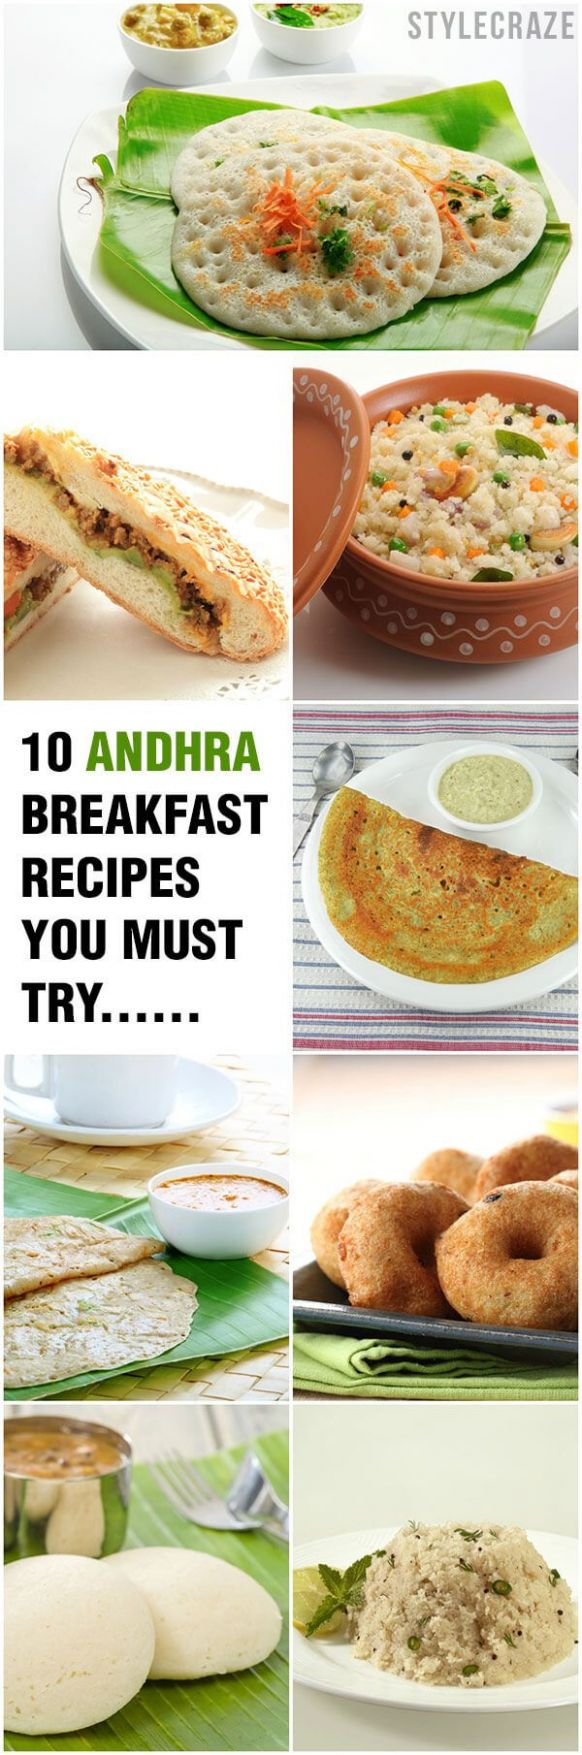 12 Quick And Simple Andhra Breakfast Recipes You Must Try   Andhra ..